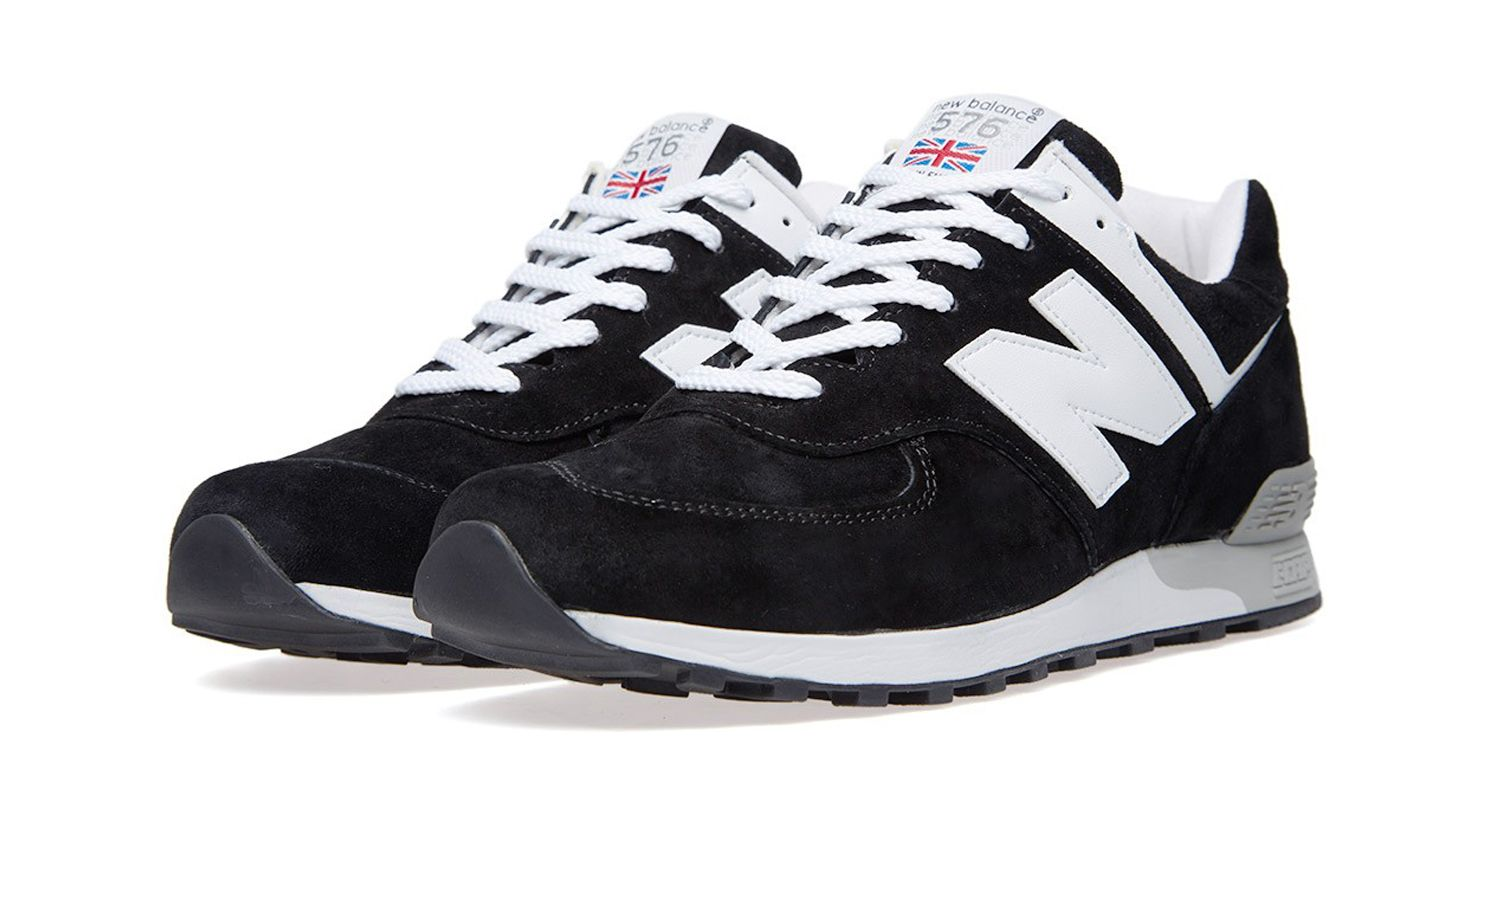 ... New Balance 576 Made in UK sneaker review 95079 29c33 ... 3040d07492a